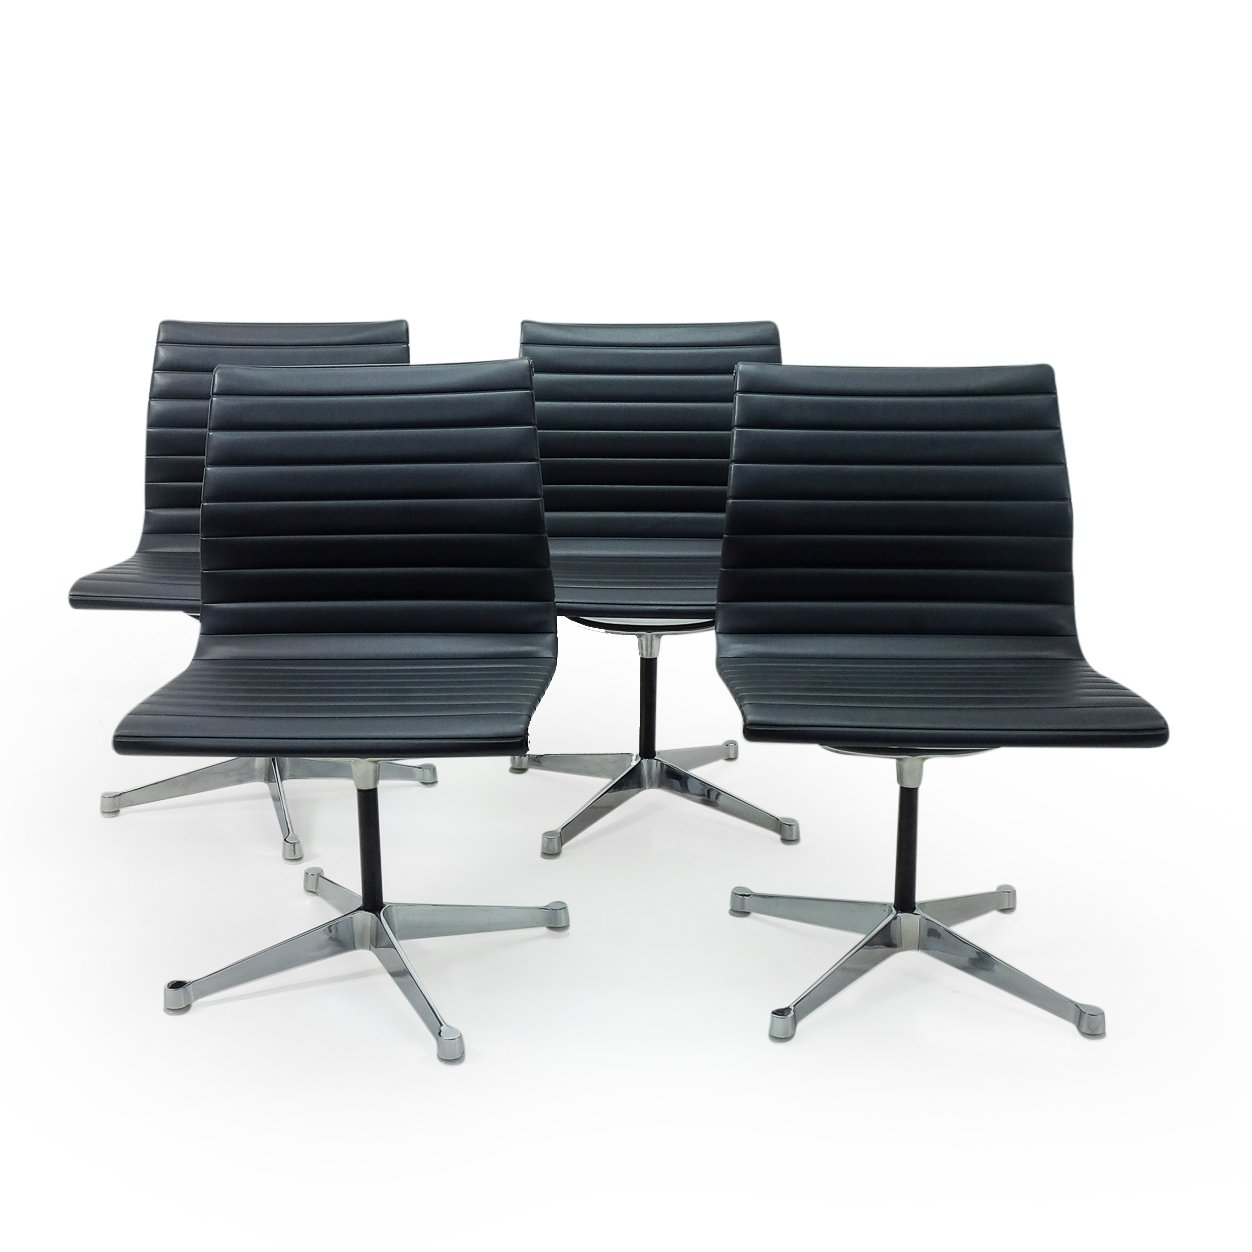 Image of: Set Of 4 Vintage Eames Ea105 Chairs By Herman Miller 110097